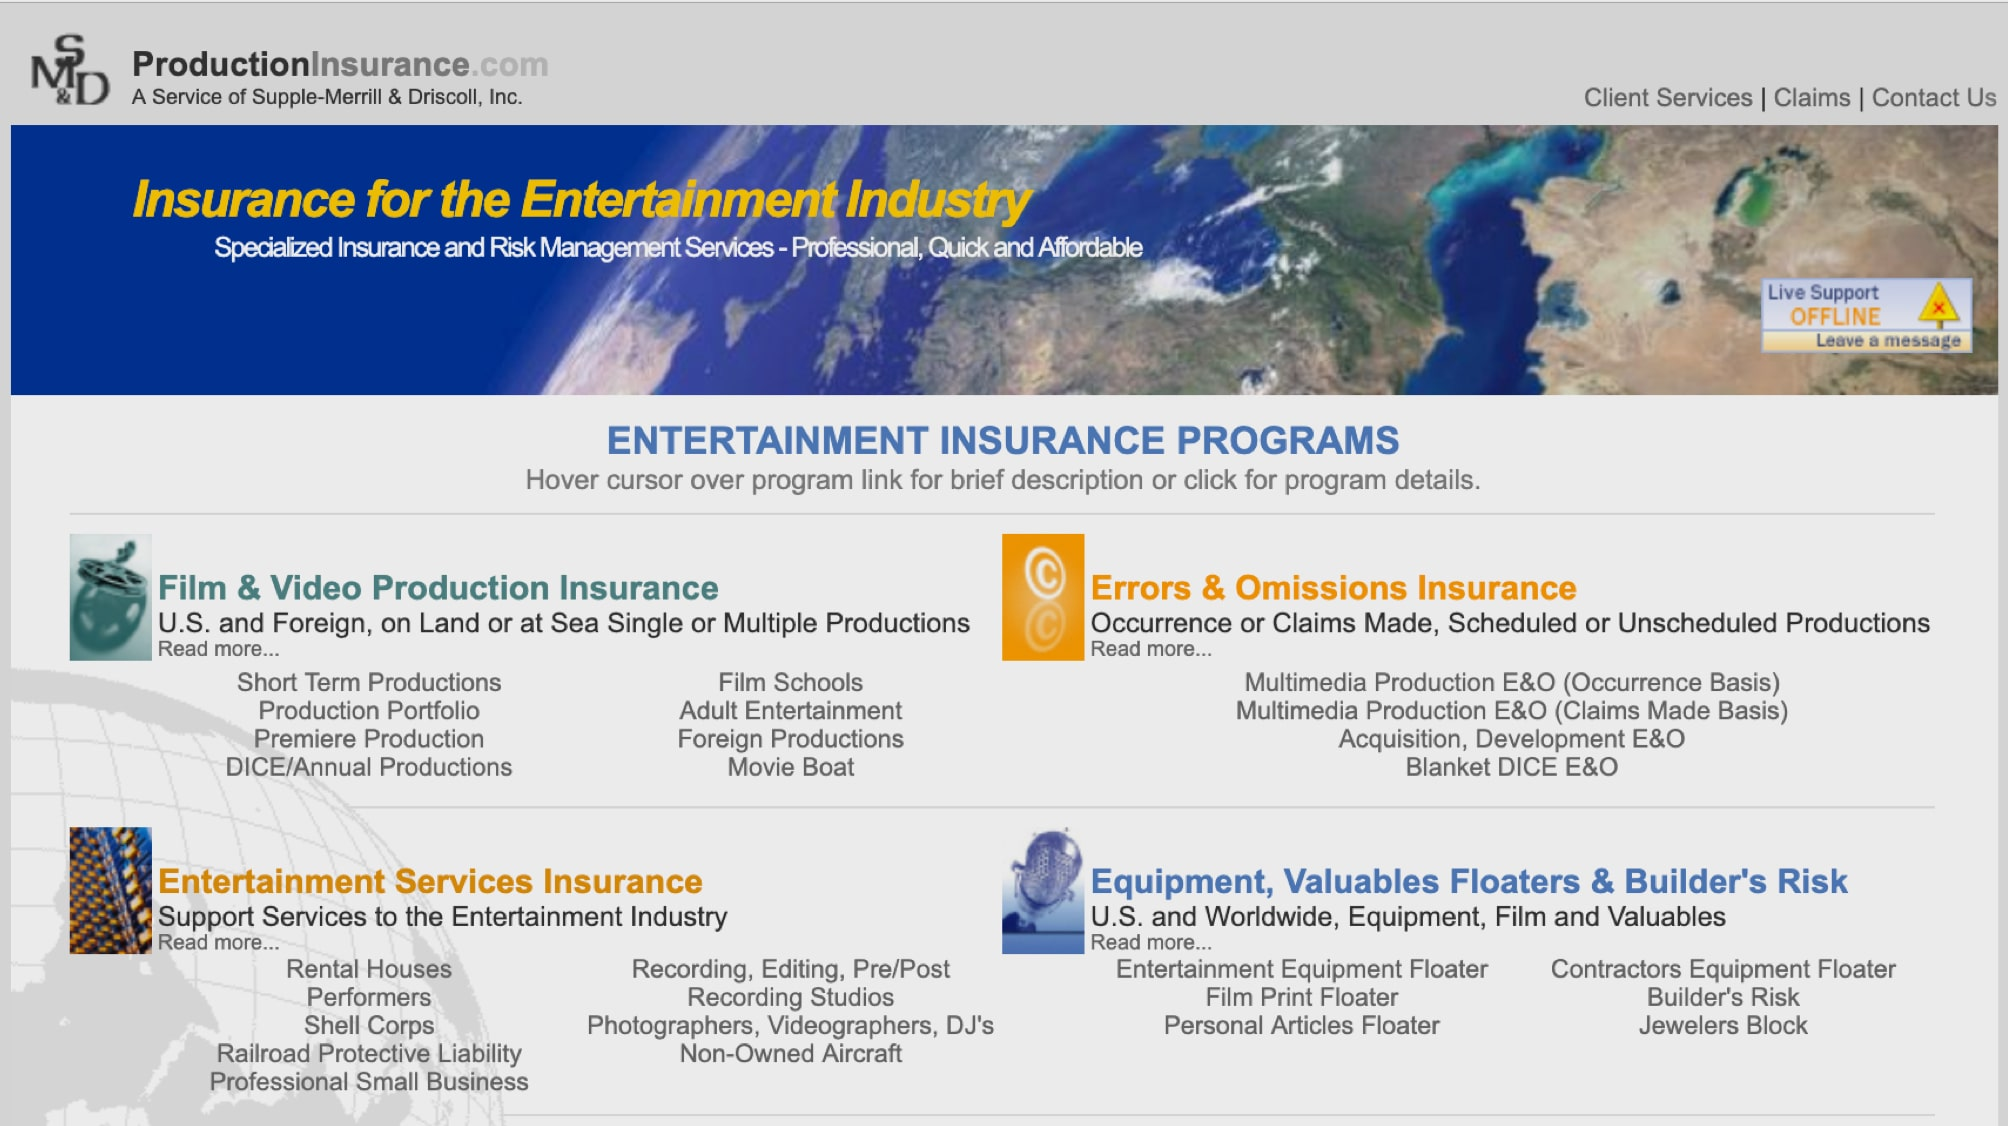 ProductionInsurance.com made our list of the best insurance companies of 2019 for their comprehensive packages.